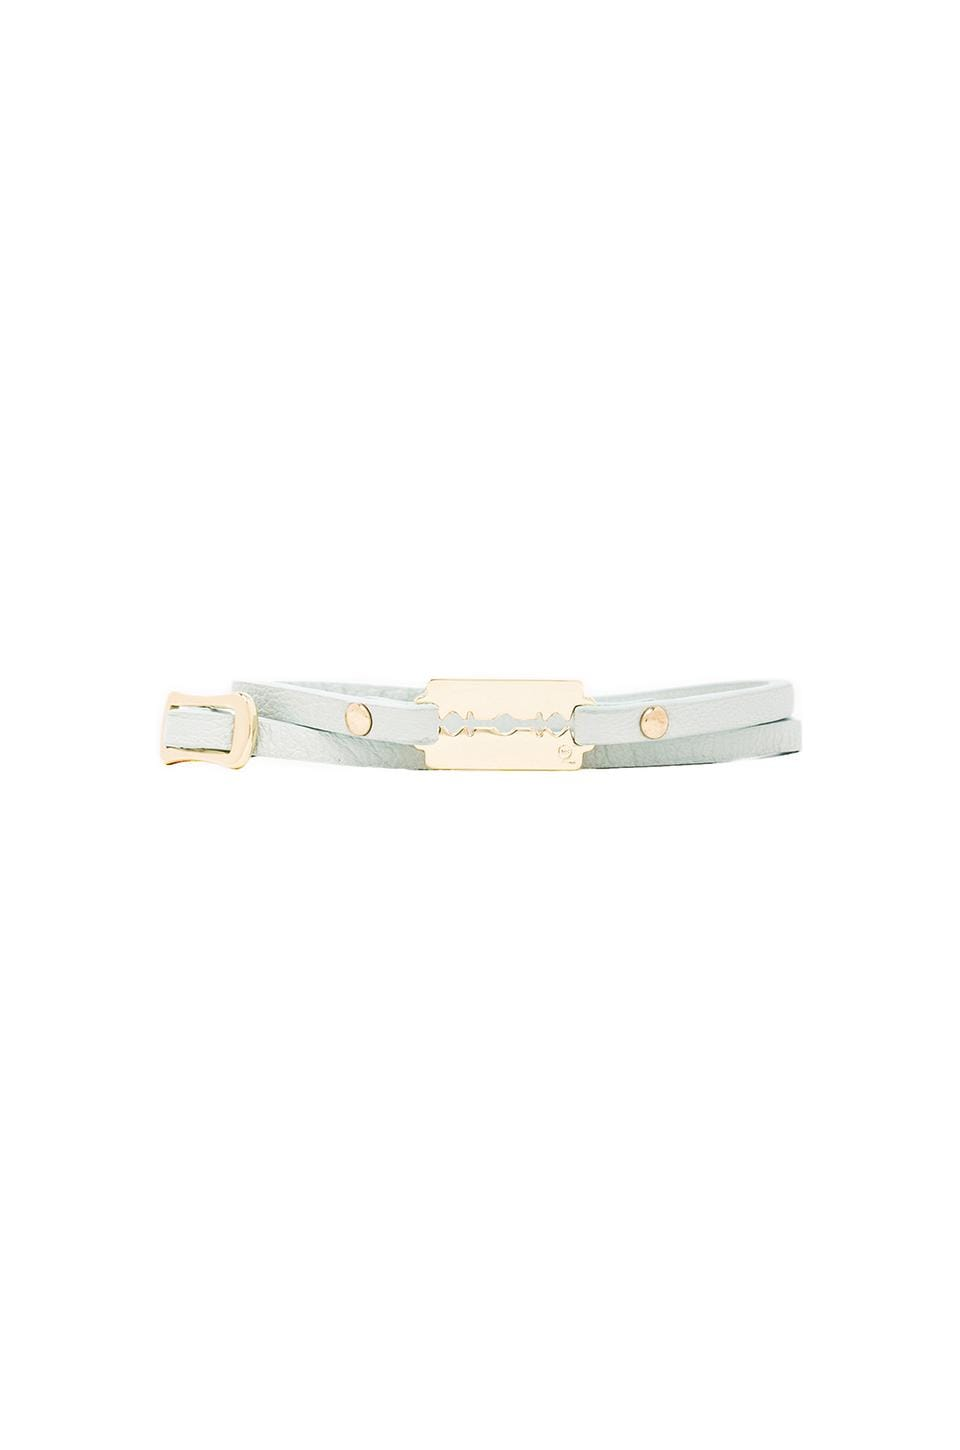 McQ Alexander McQueen Mini Razor Bracelet in Ice Mint